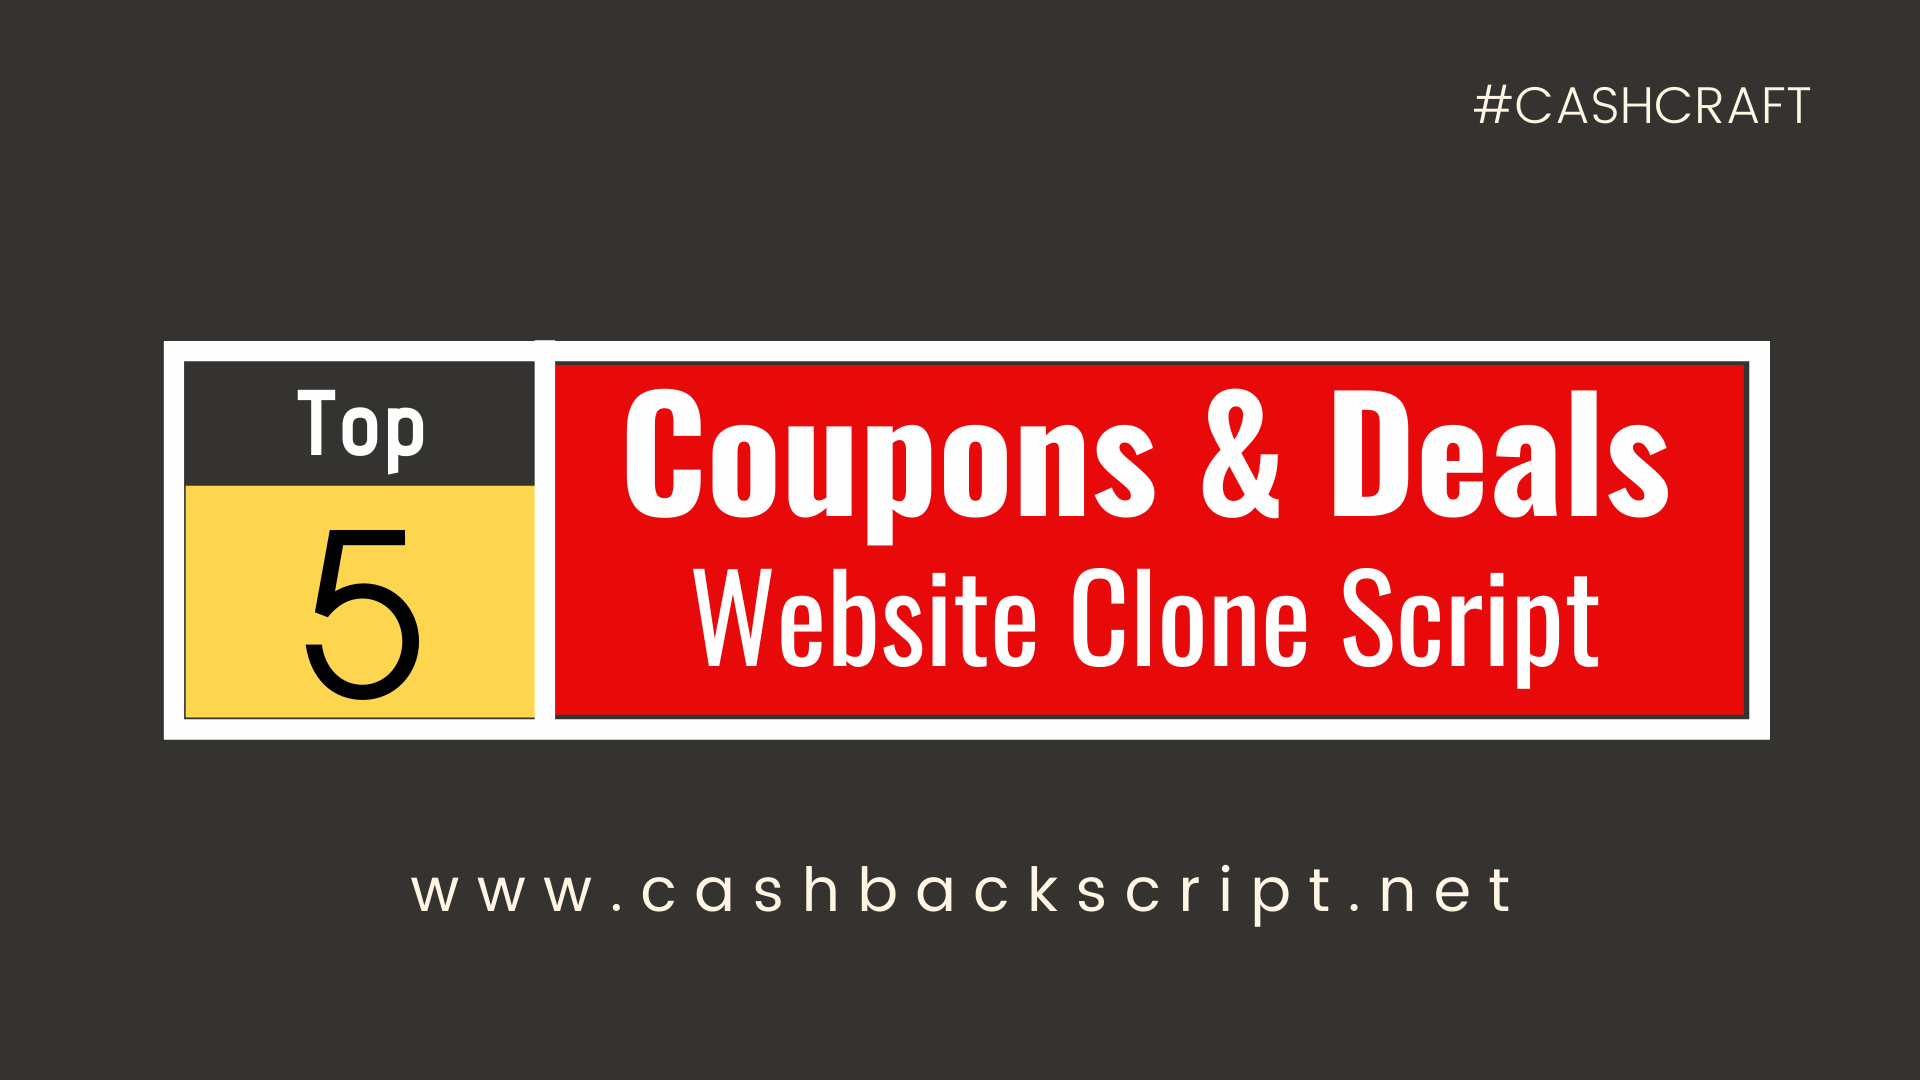 Coupon Clones - Top 5 Coupons & Deals Website Script